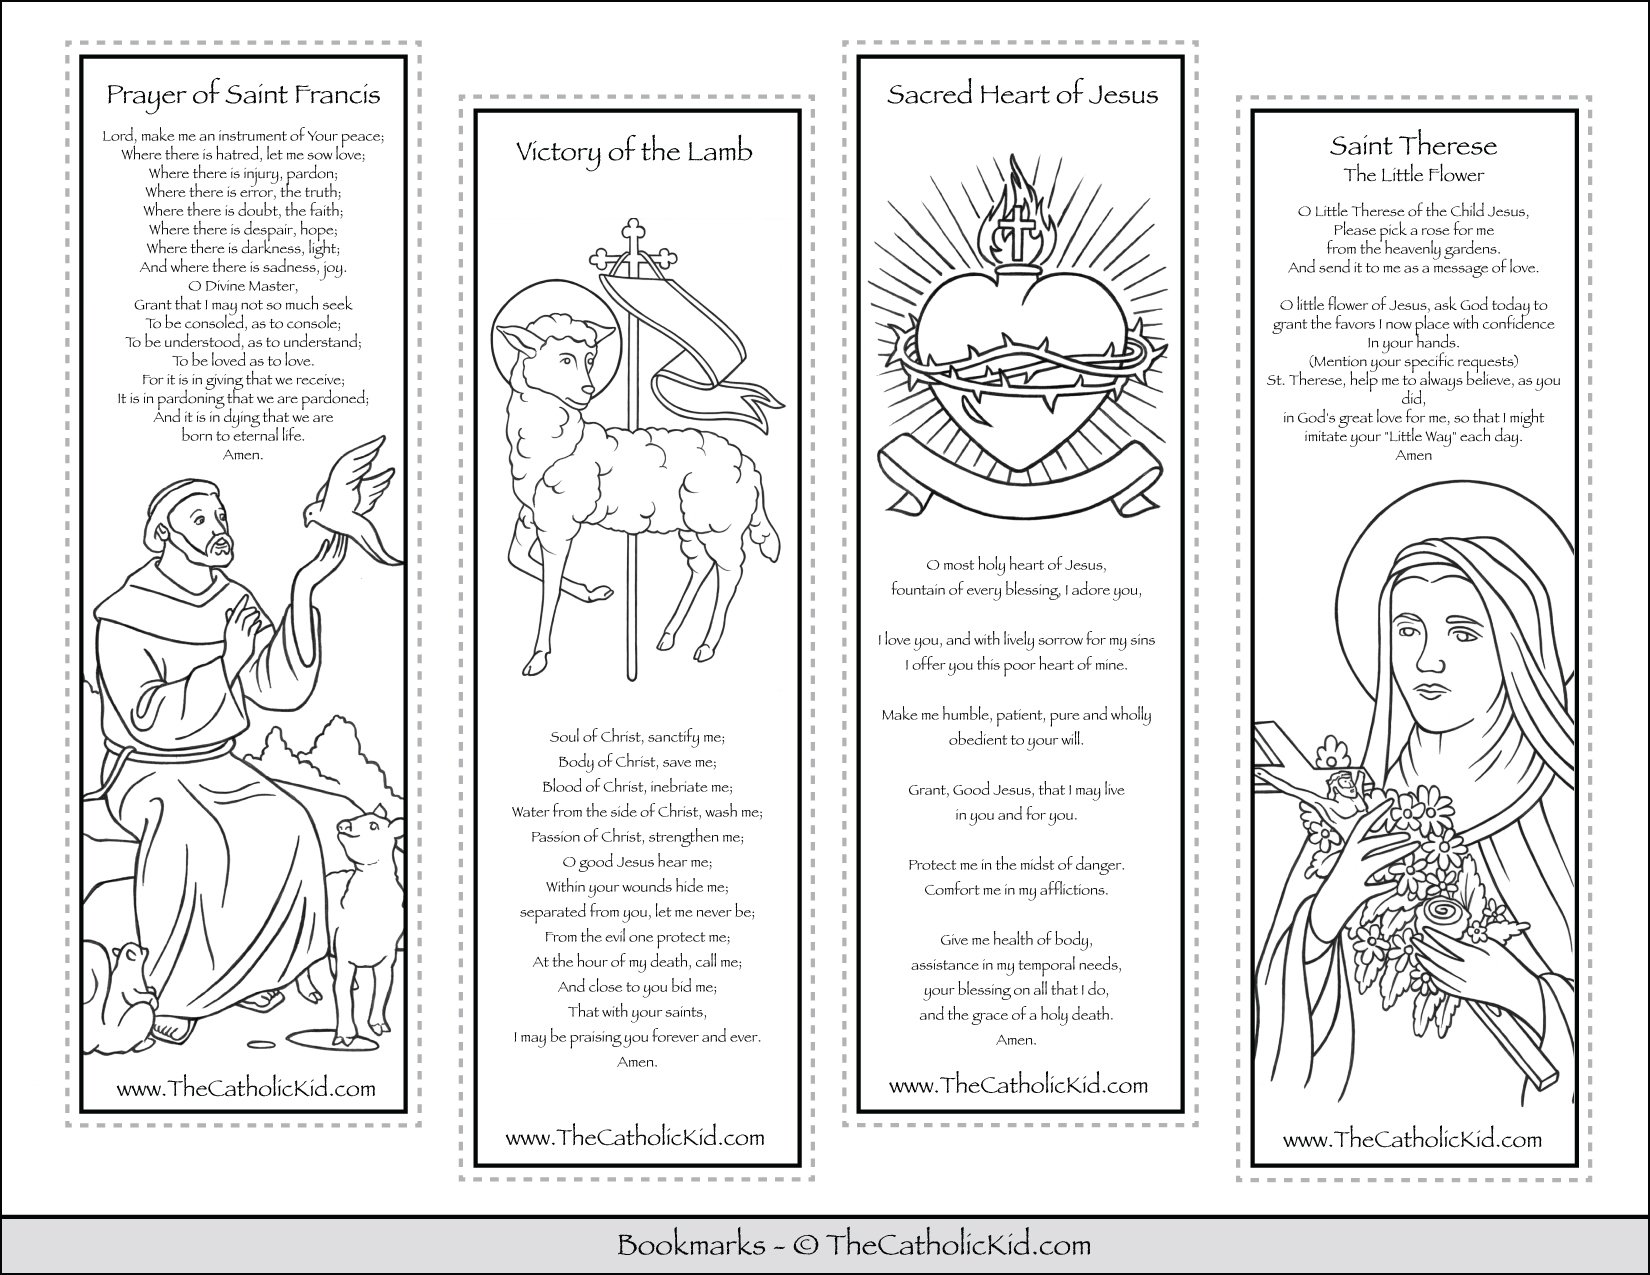 sampler pack thecatholickid can obedient coloring printable catholic bookmarks cnt mls coloring pages I Can Be Obedient Coloring Page